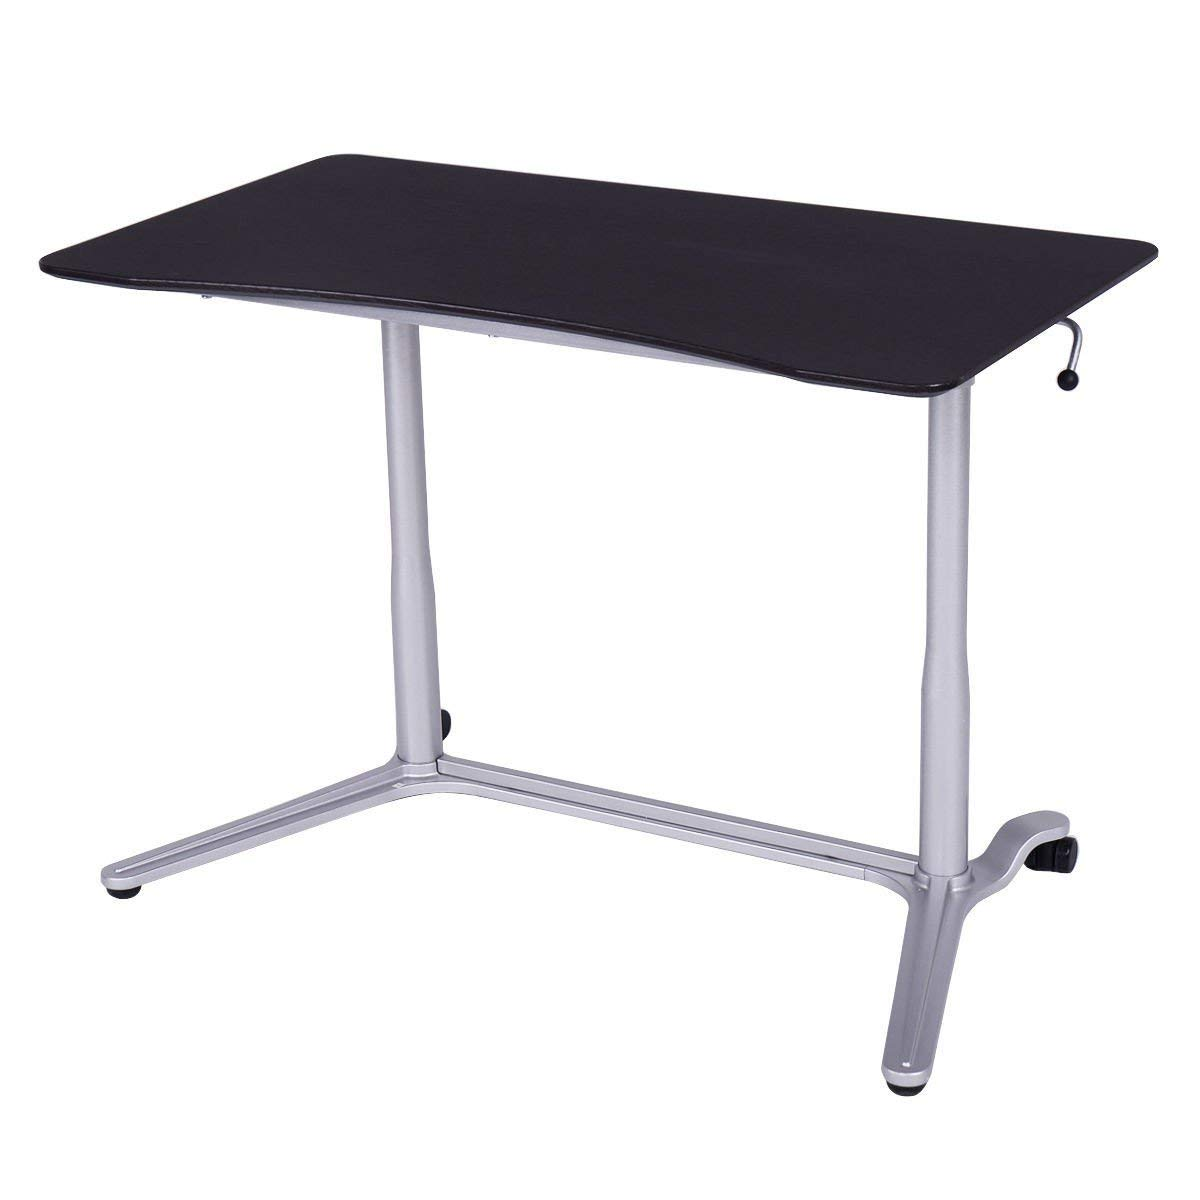 Portable Adjustable Laptop Computer Desk Stand Table - Bundle with Floor Pads